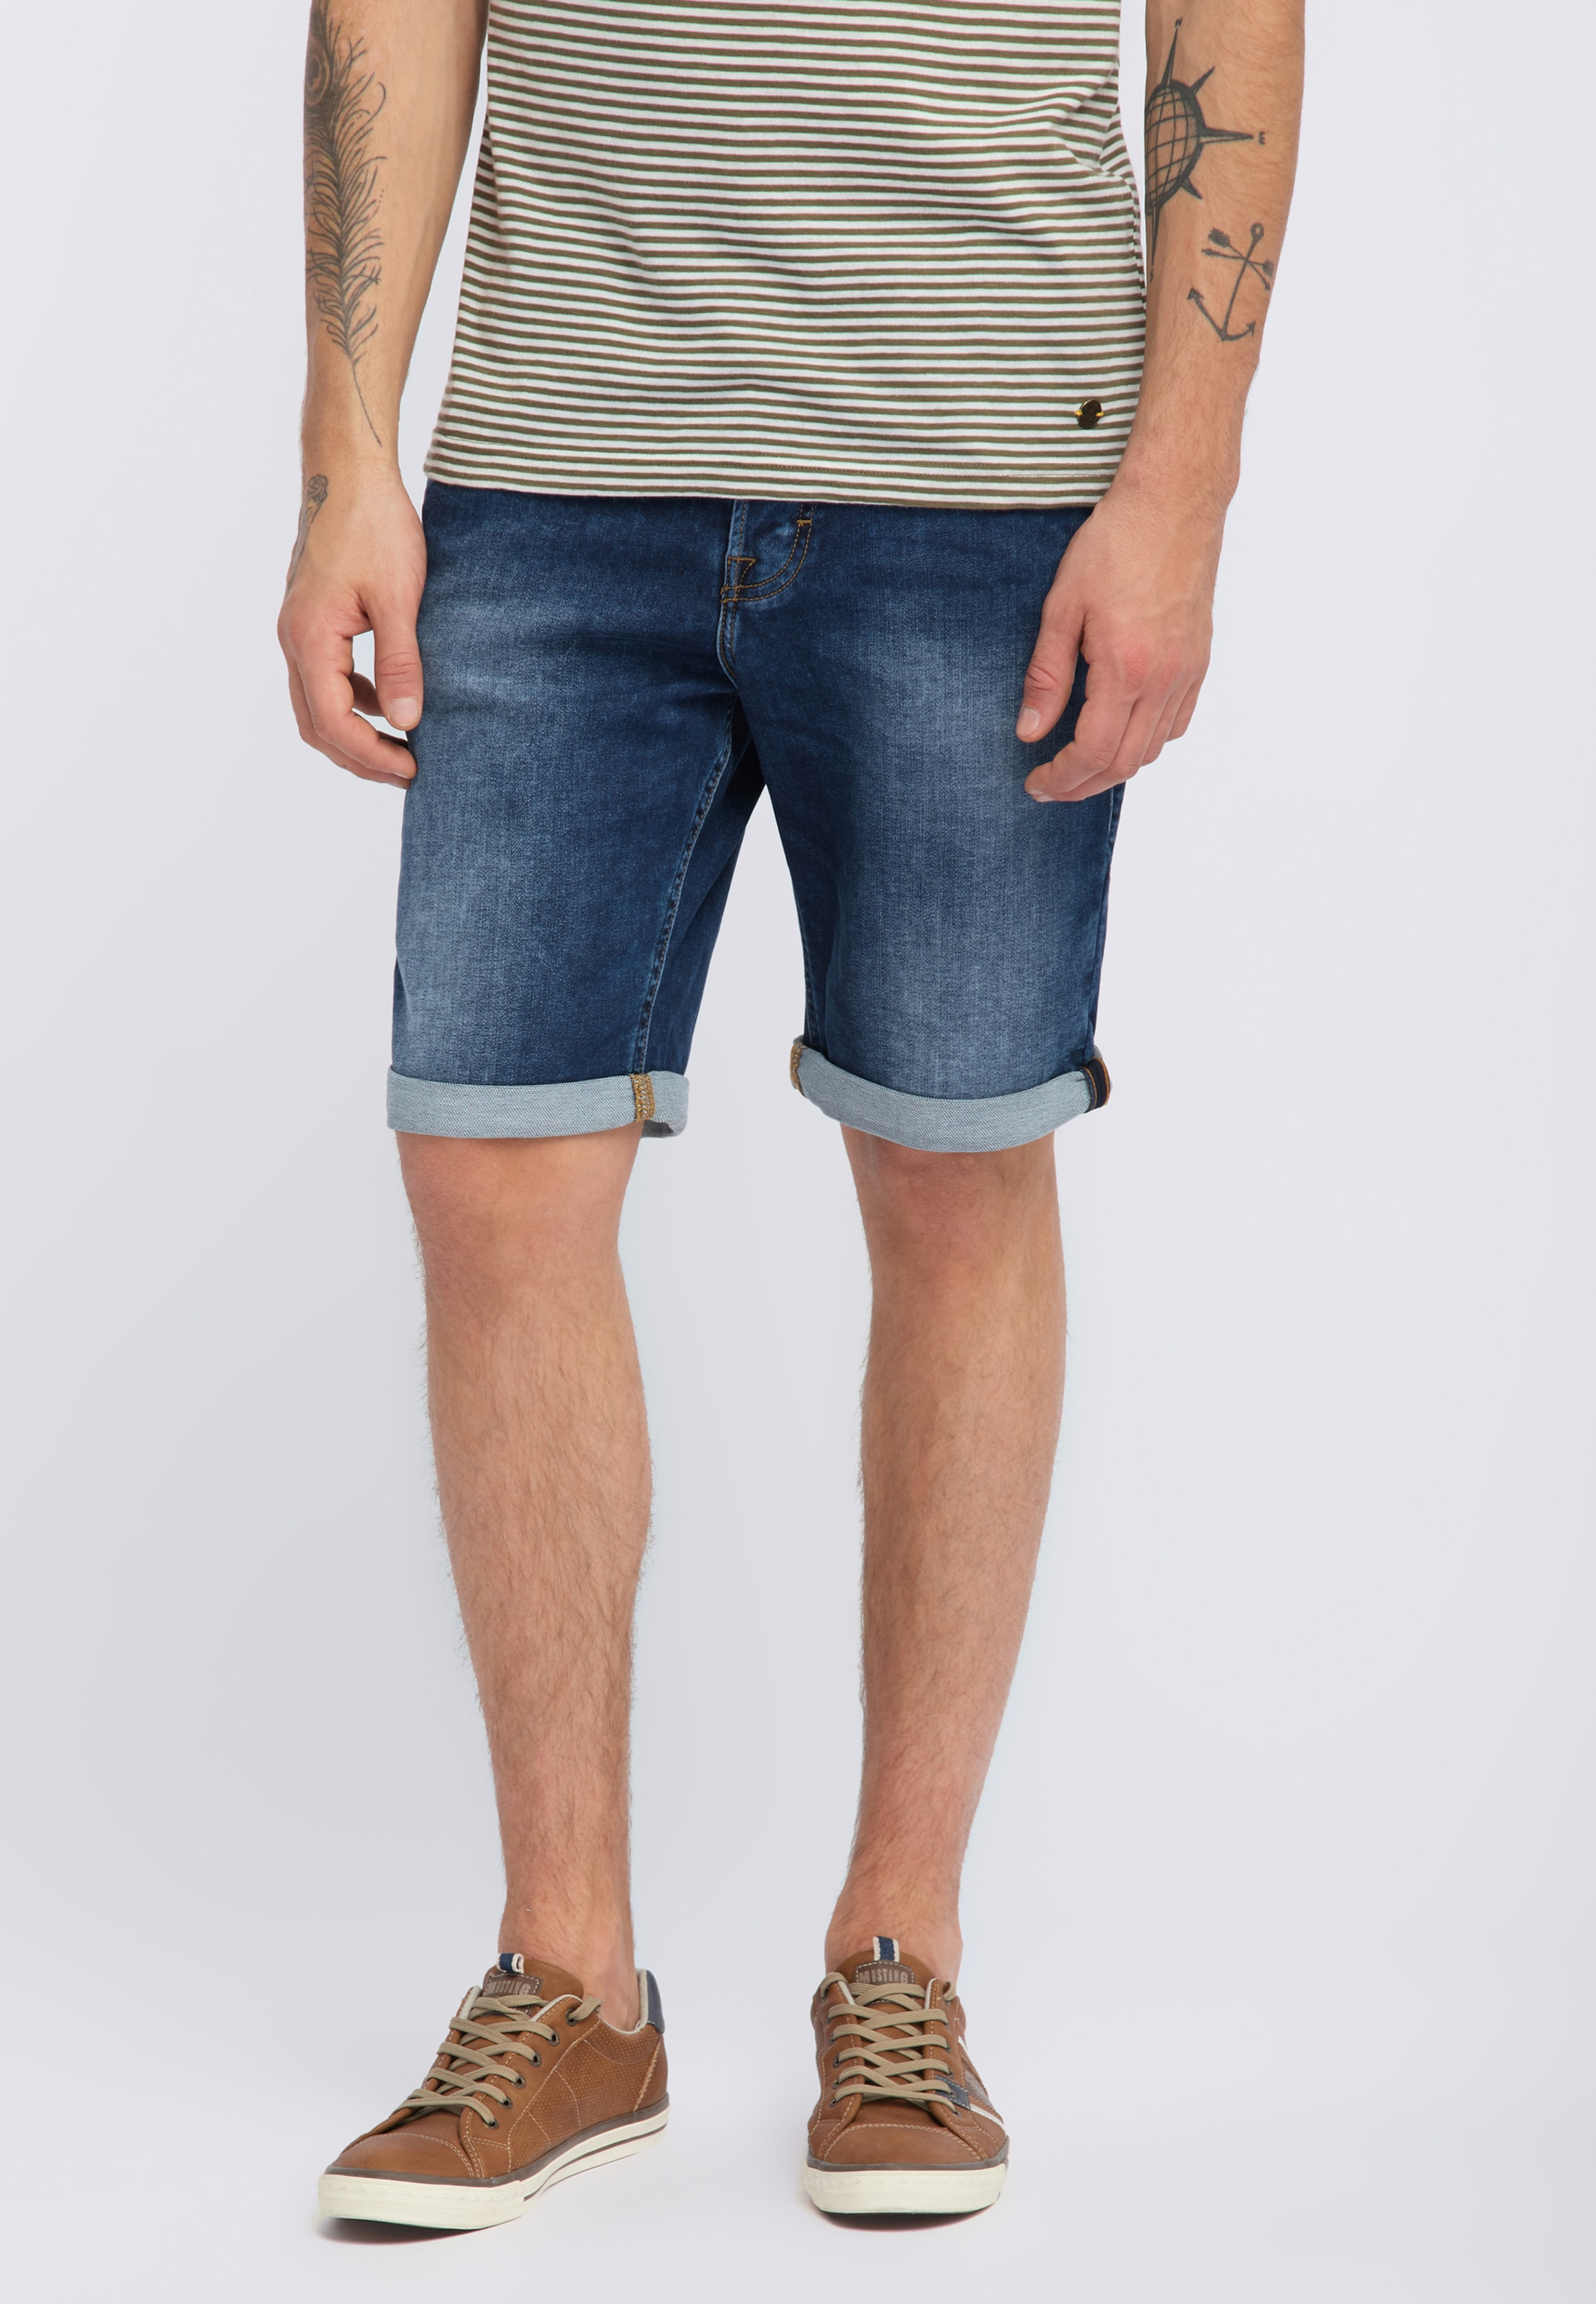 Mustang Denim Shorts Blue 'chicago' In 354RqAjL